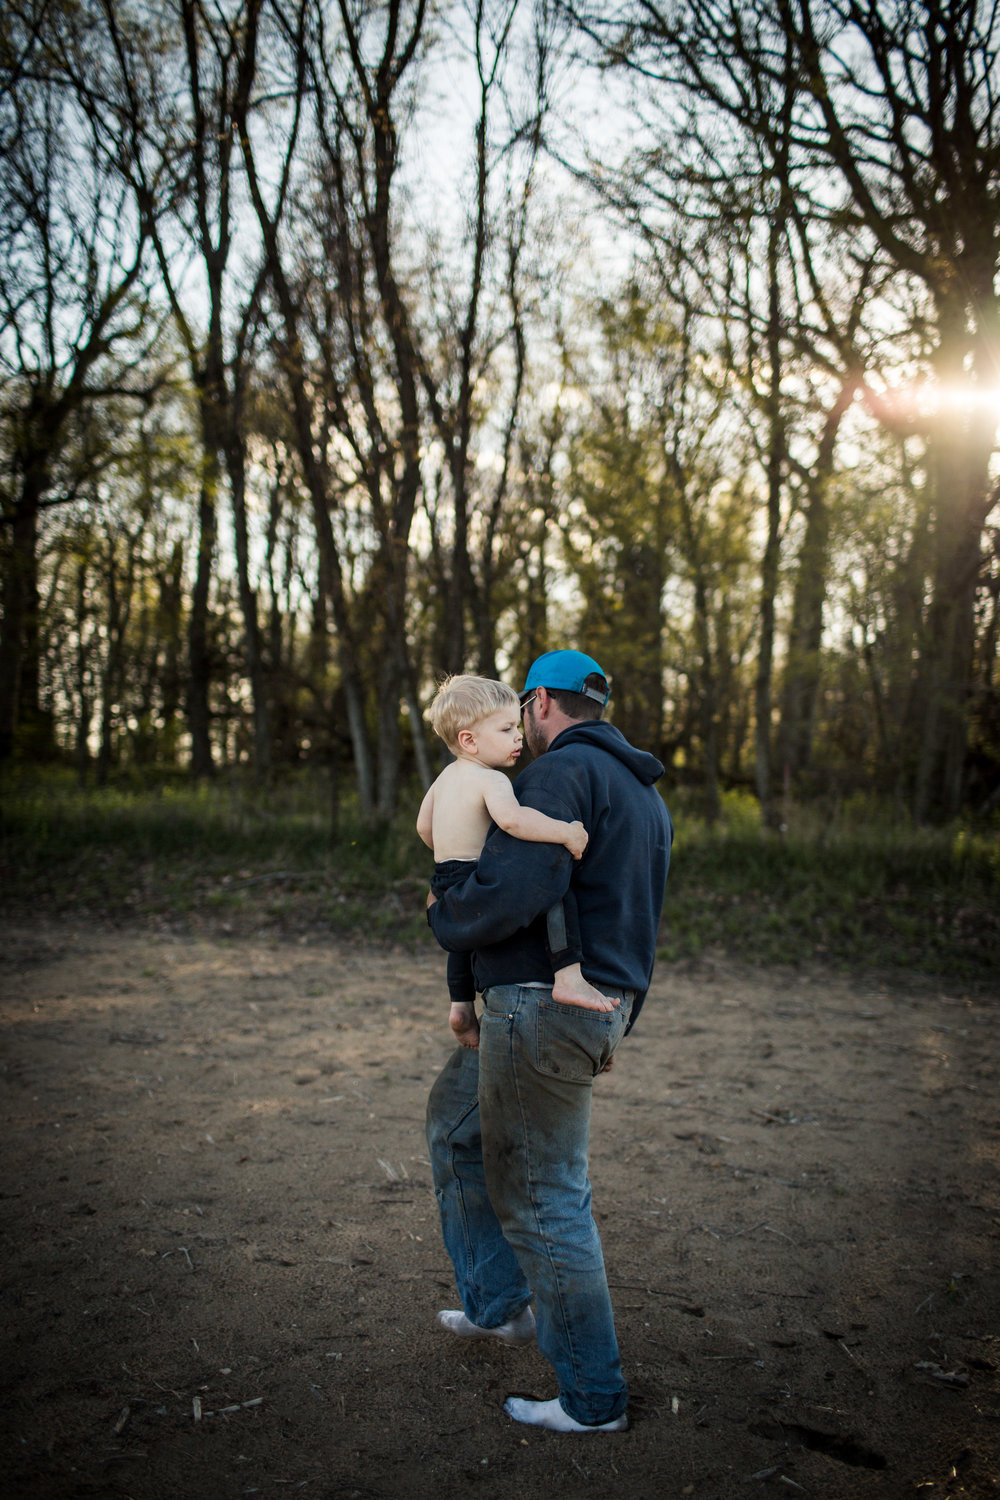 Exploring, Connected, Powerful, Lifestyle Family Sunset Session, Farm, Indiana, Laura Duggleby Photography-29.JPG